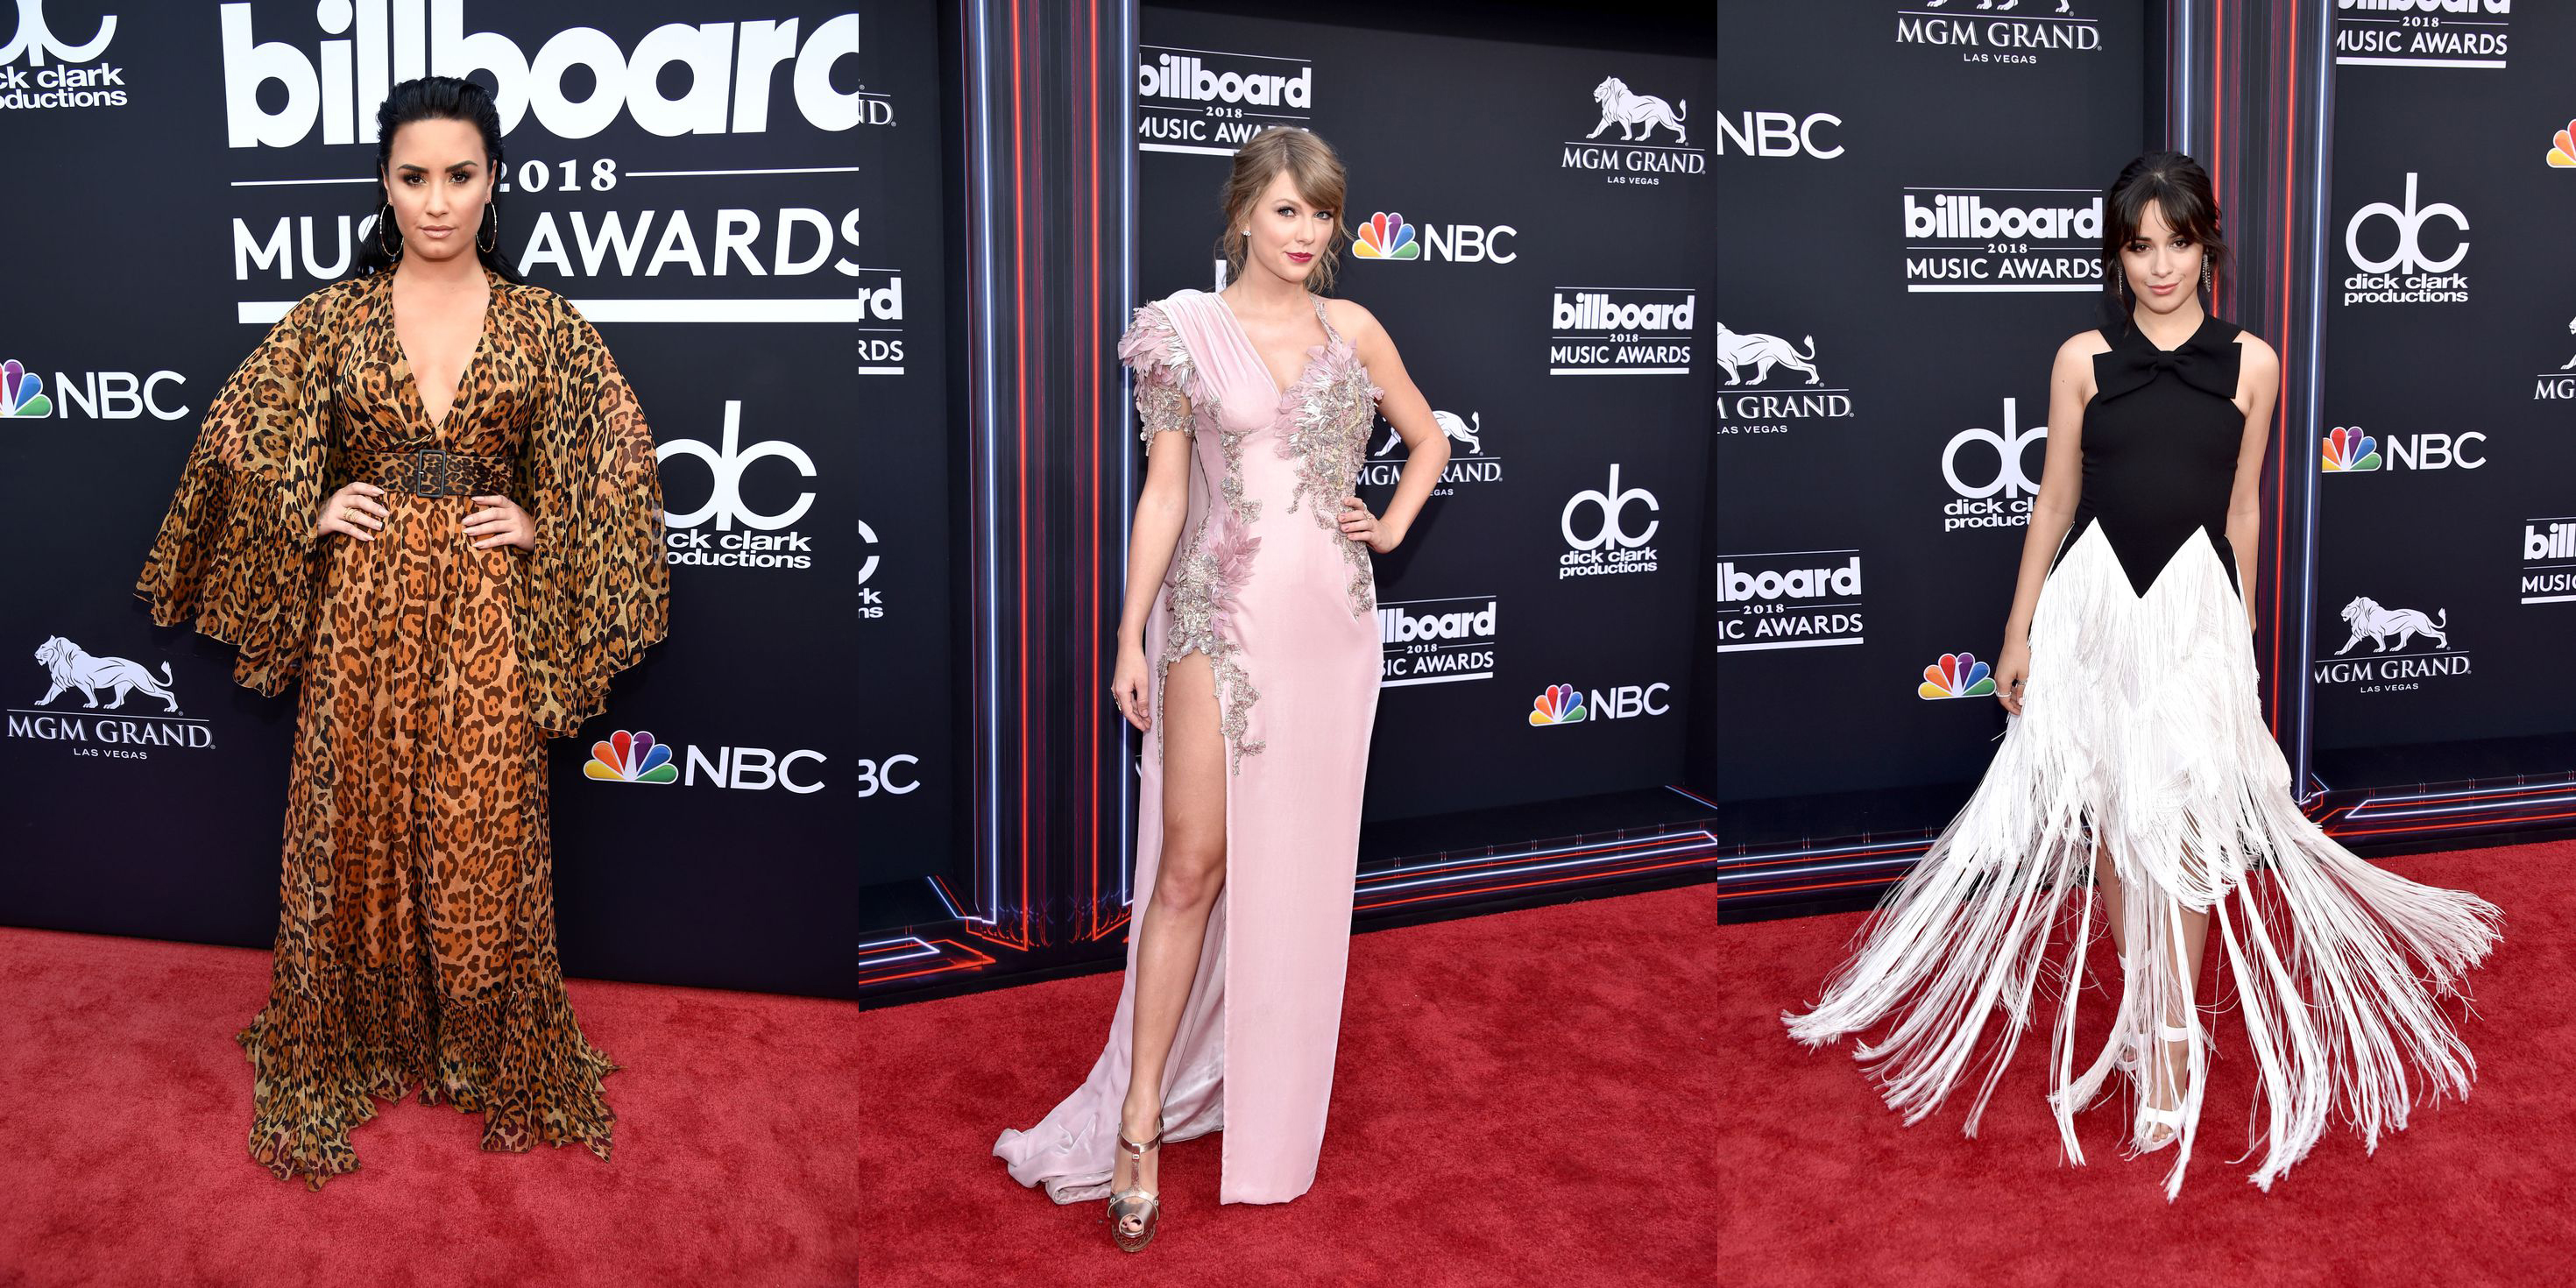 La alfombra roja de los Billboard Music Awards 2018